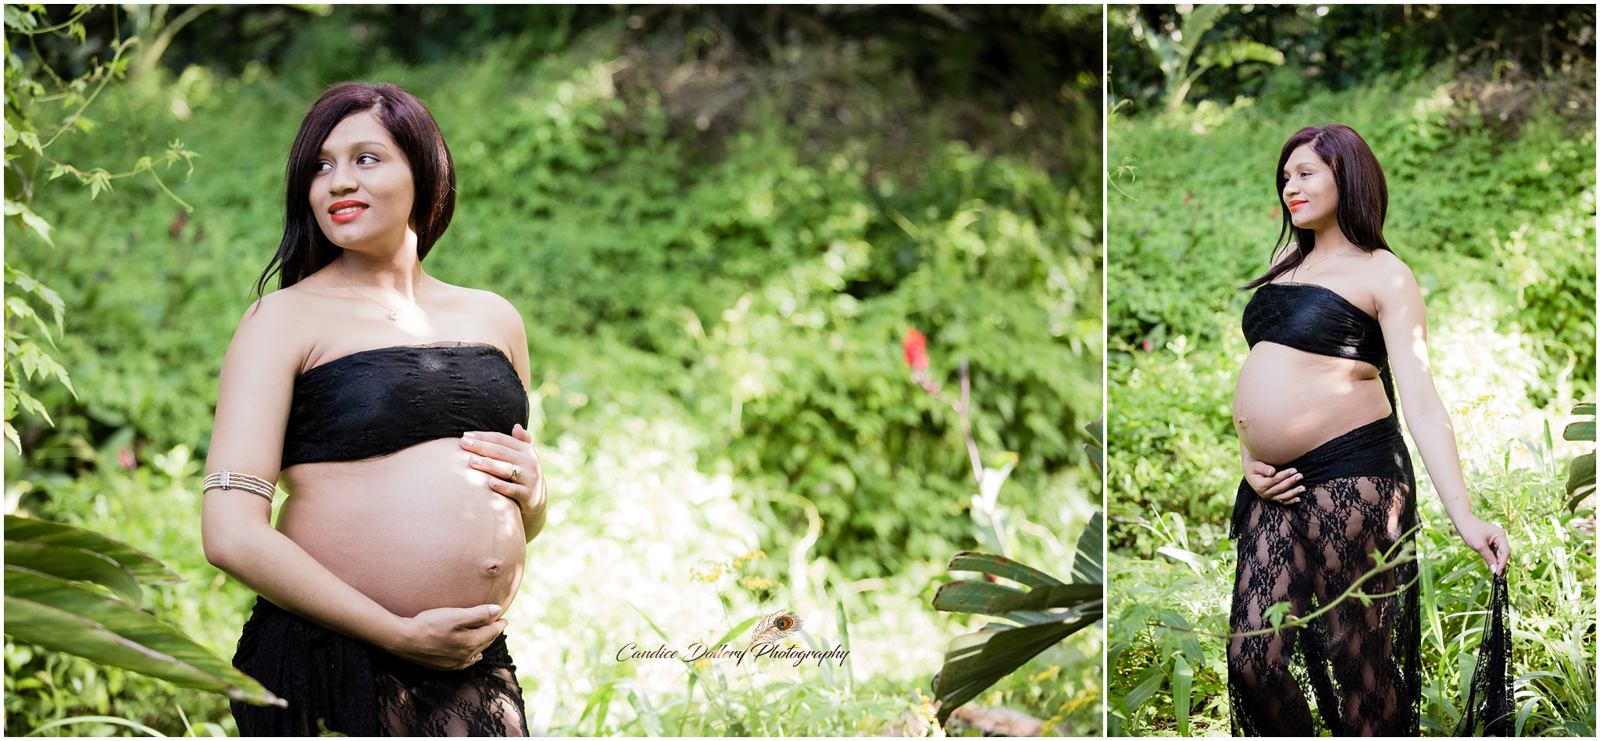 loris-pregnancy-candice-dollery-photography_2448